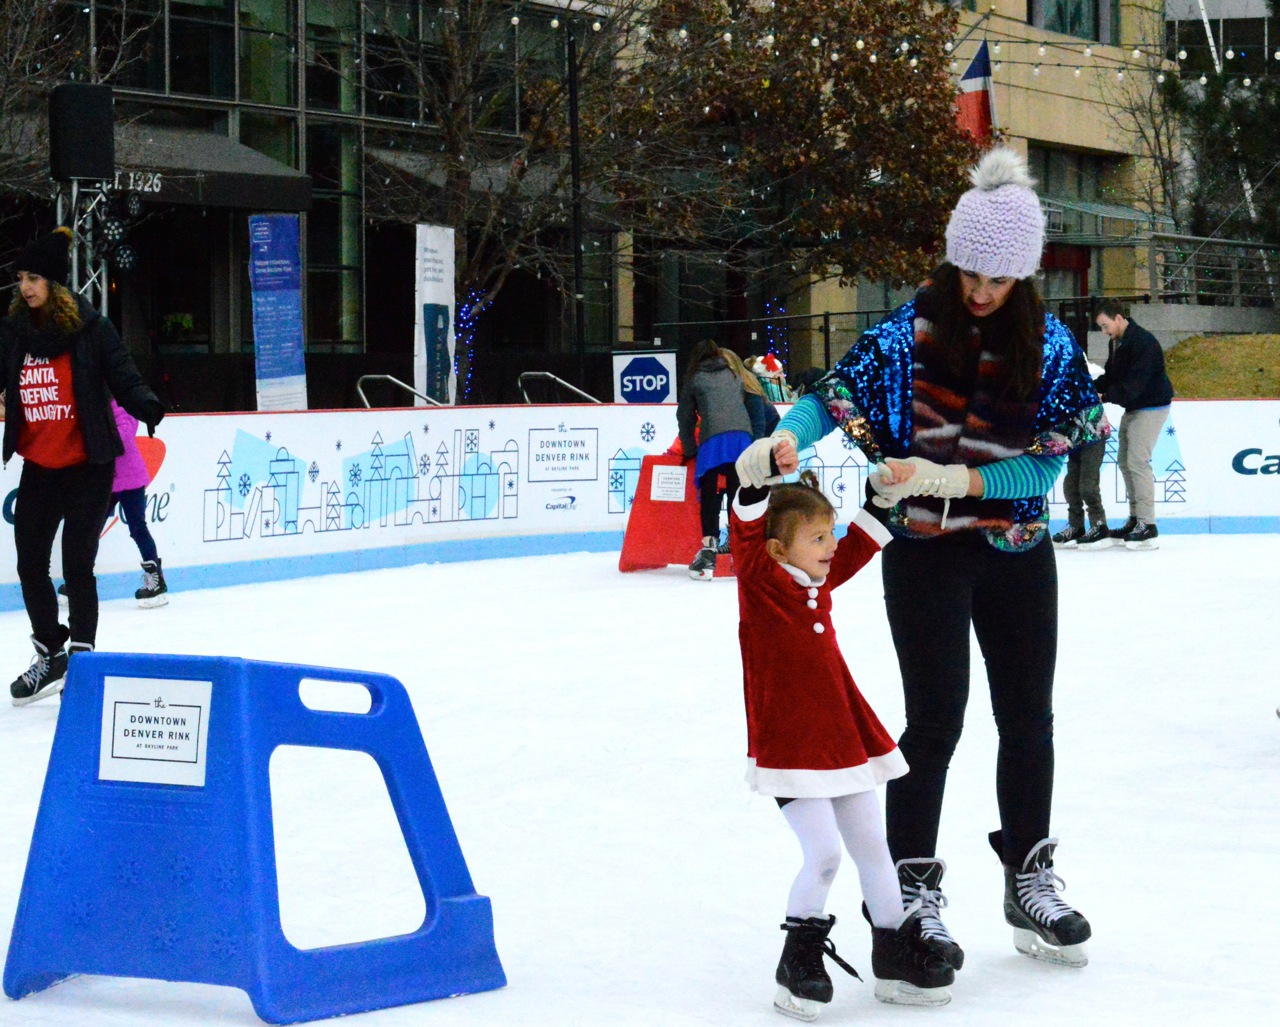 Downtown Denver Ice Skating 2018 7.jpg